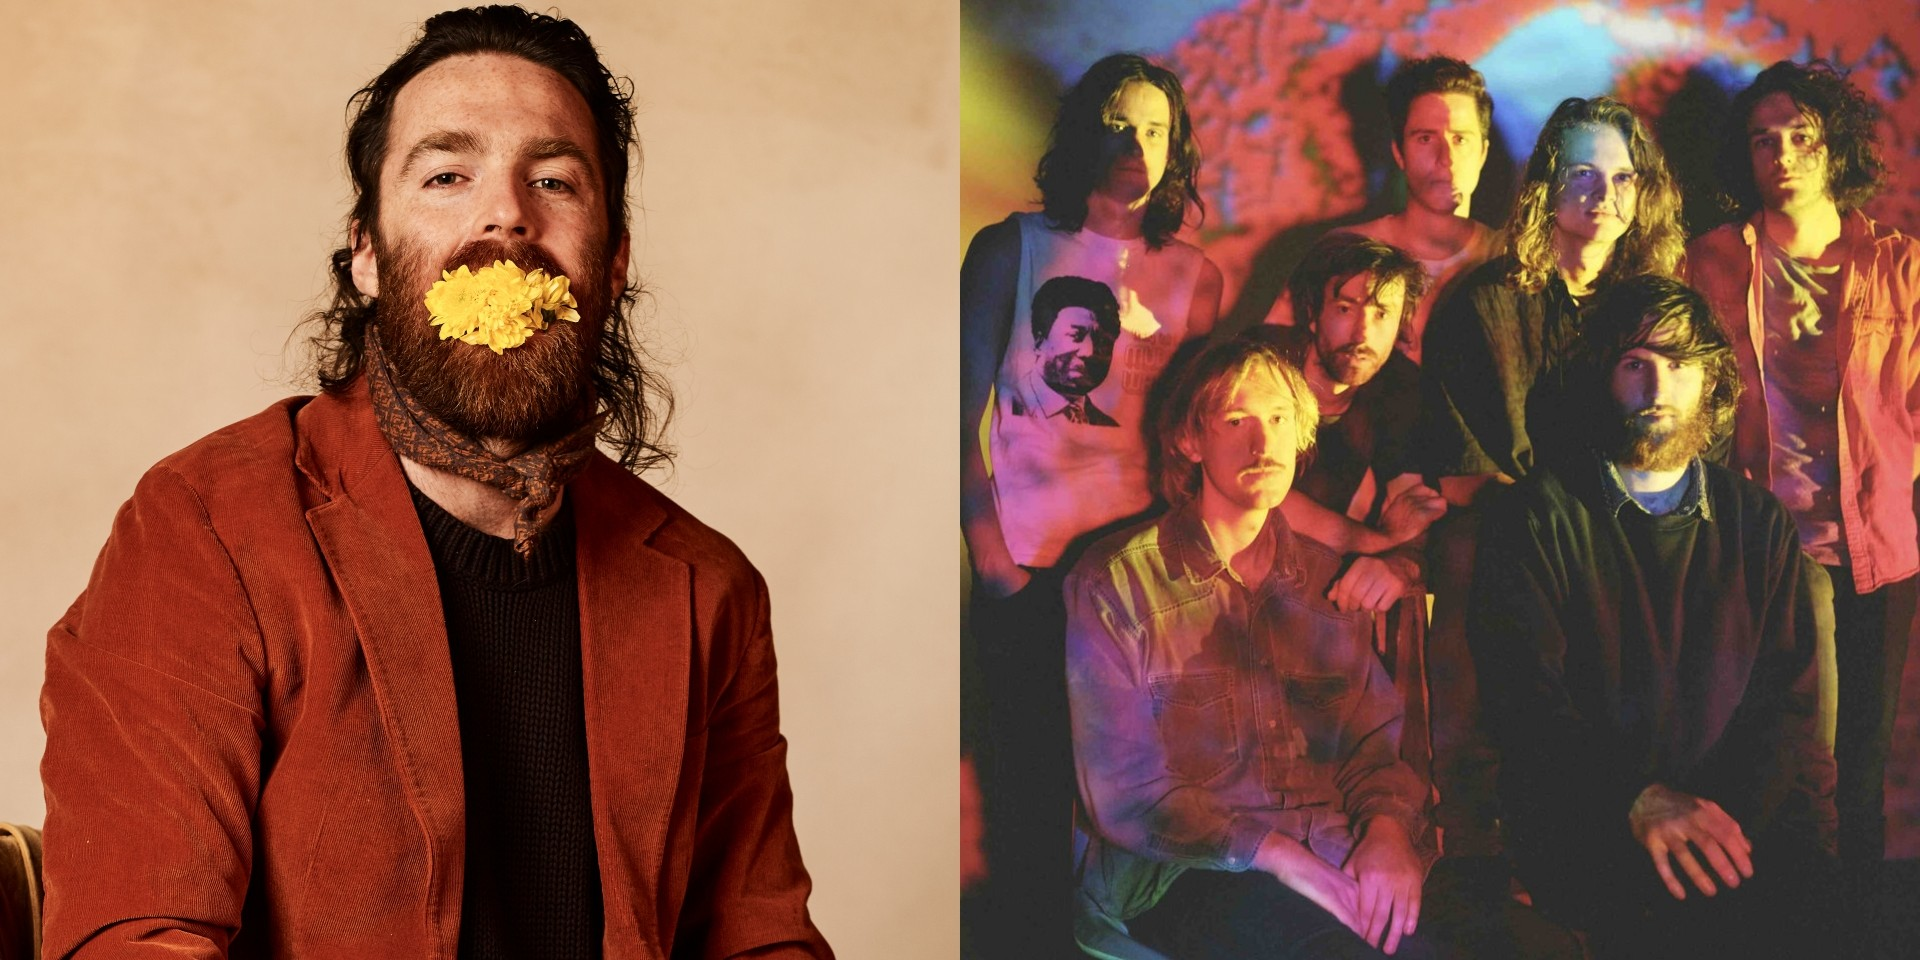 Neon Lights announces expanded lineup – Nick Murphy, King Gizzard & the Lizard Wizard, BADBADNOTGOOD and more confirmed